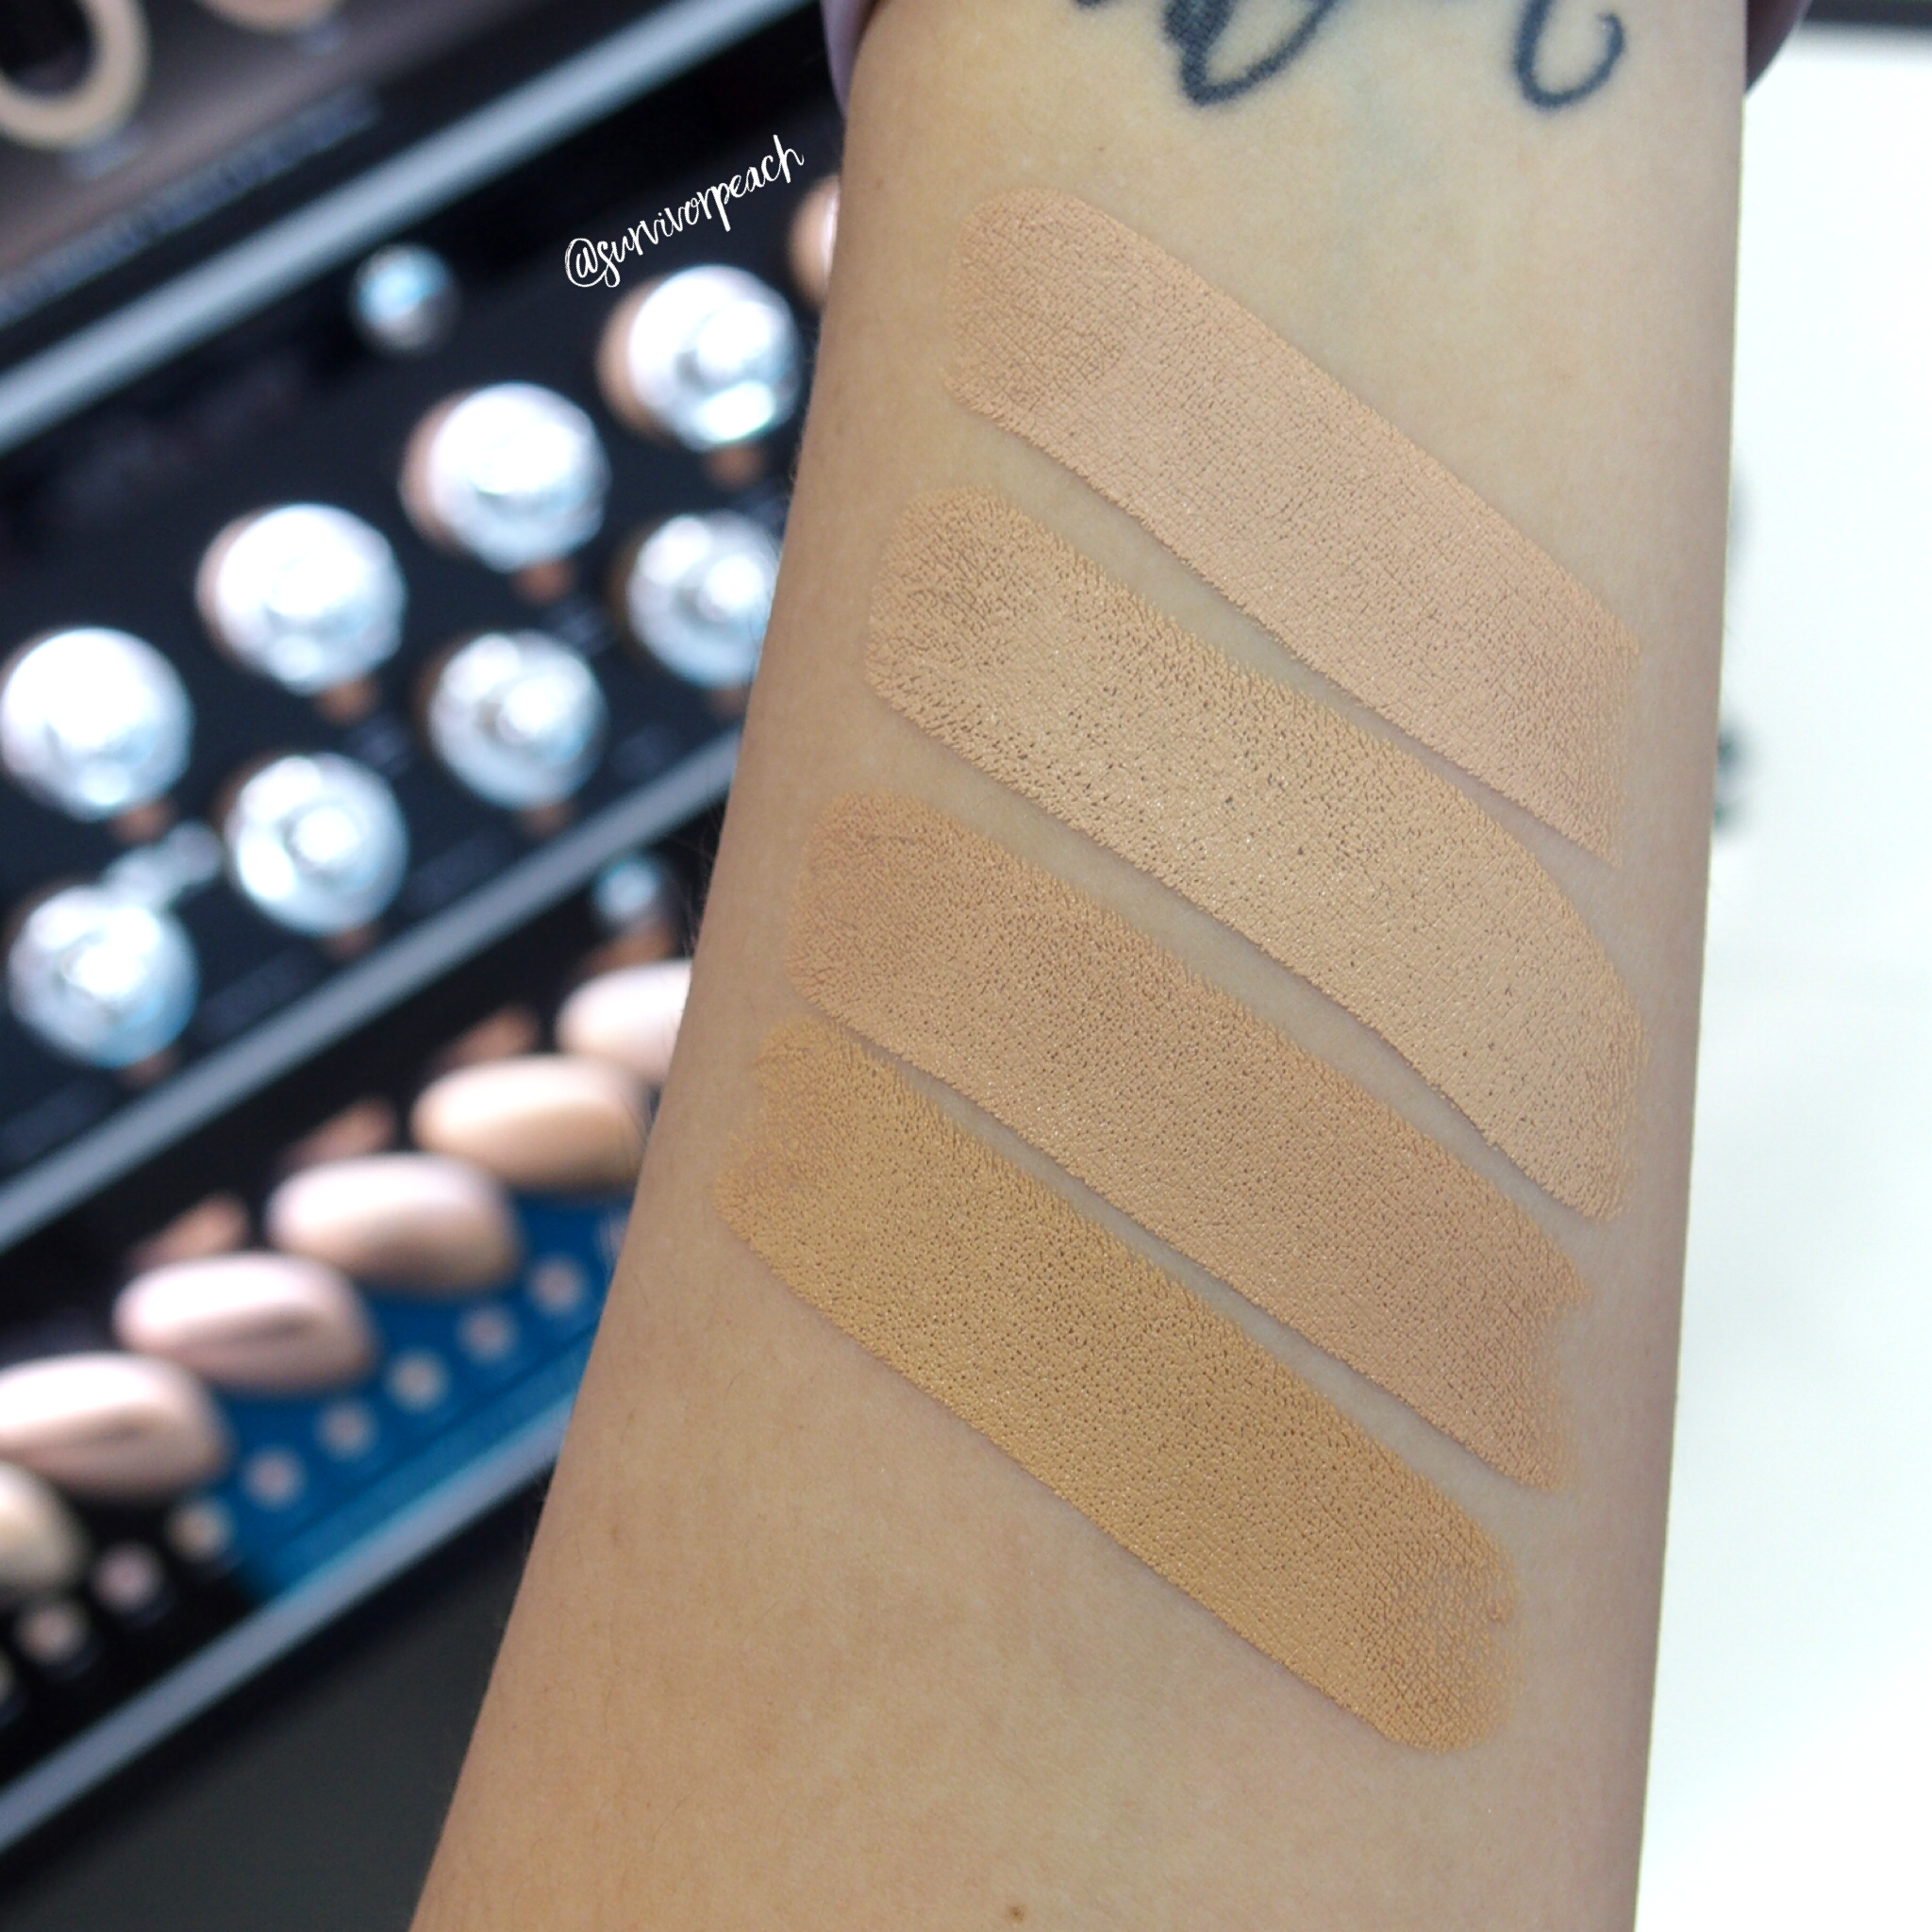 Marc Jacobs Accomplice Concealer & Touch Up Stick swatches - Medium